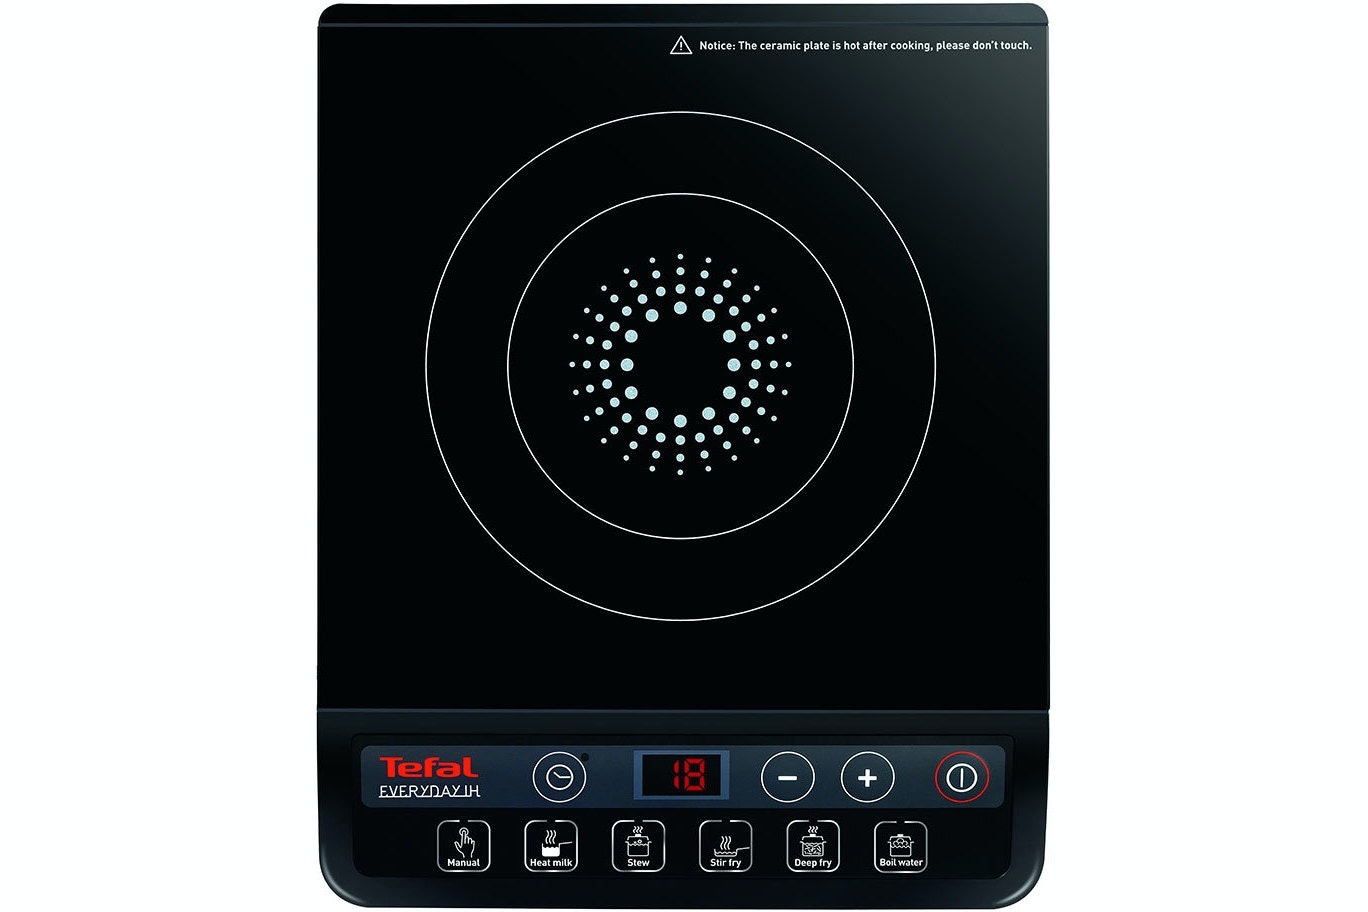 Tefal Induction Hob | IH201840/